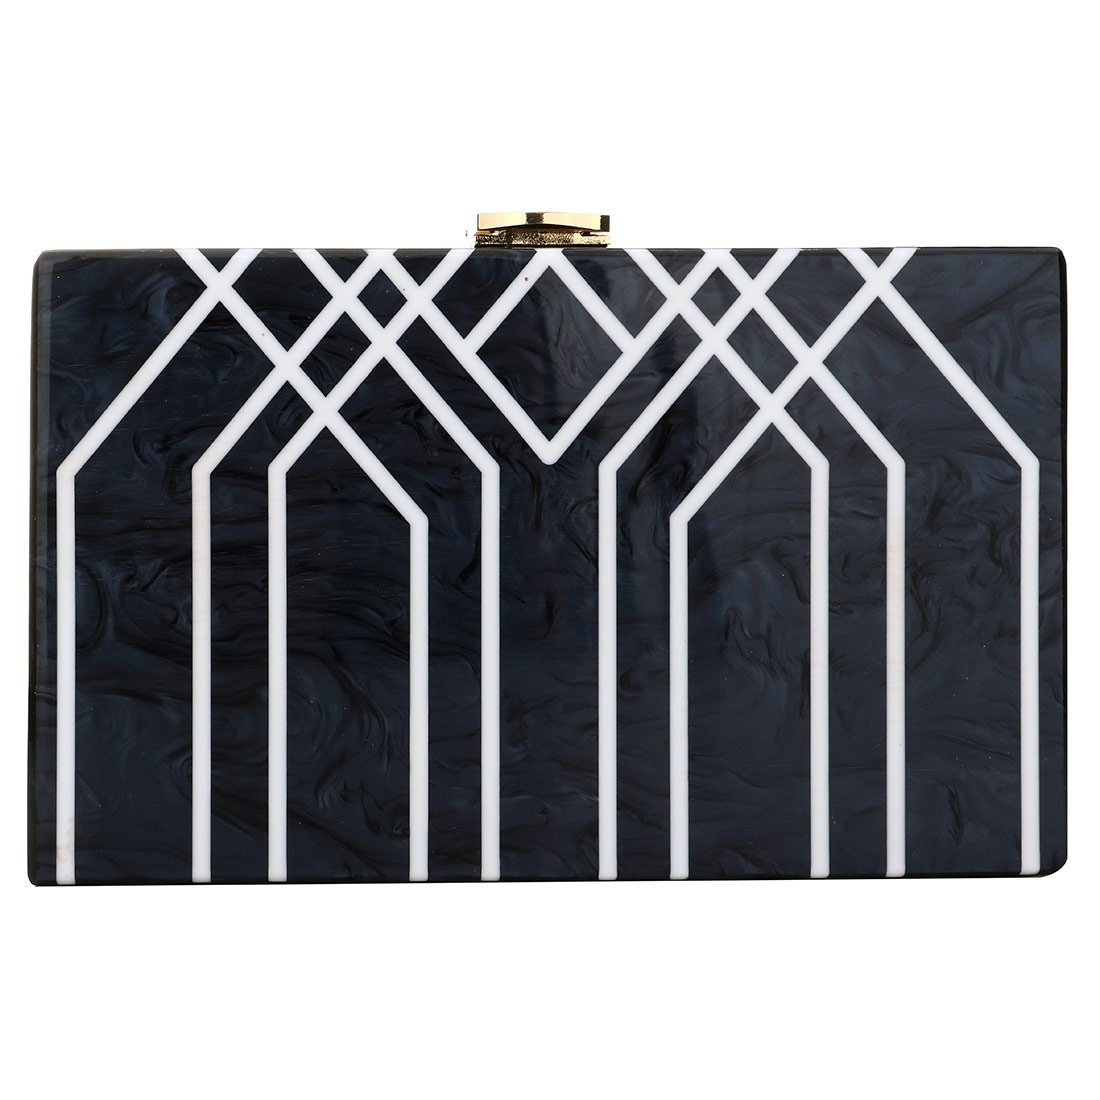 Evening Handbag Box Acrylic Clutch Stripes Shoulder Bag for Party (Black) by KNUS (Image #2)